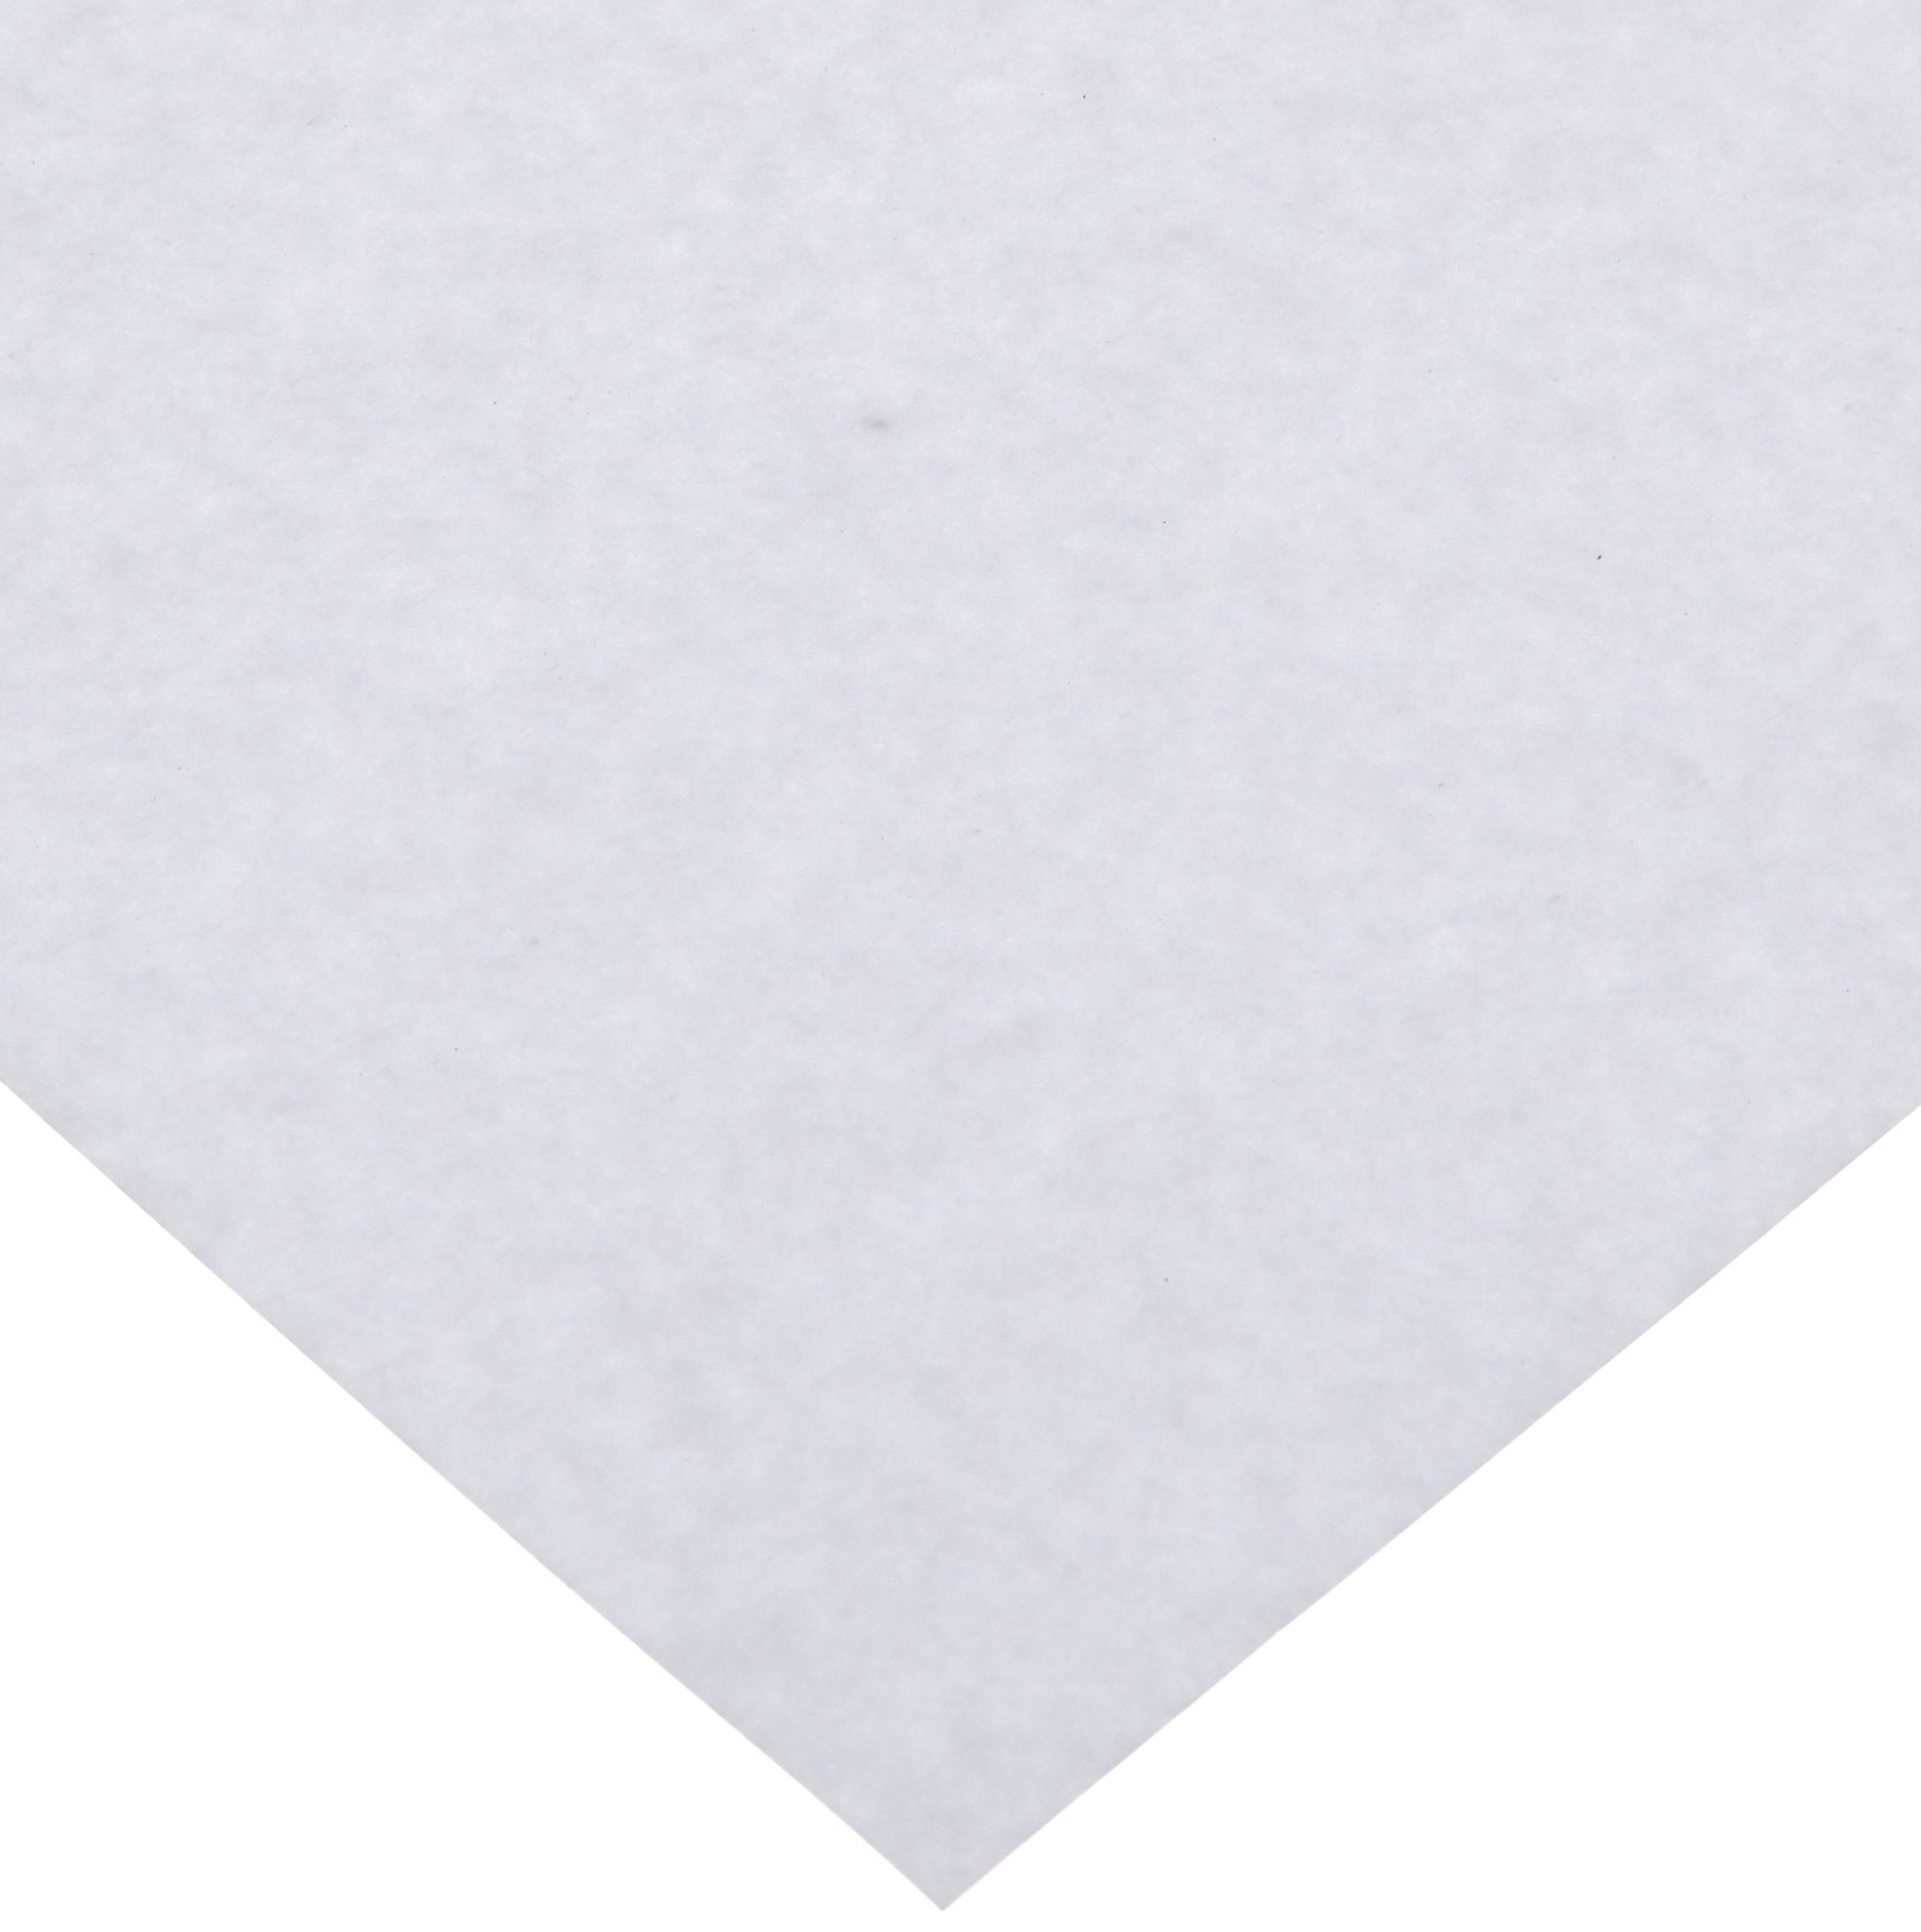 Sax Sulphite Drawing Paper, 60 lb, 12 x 18 Inches, Extra-White, Pack of 500